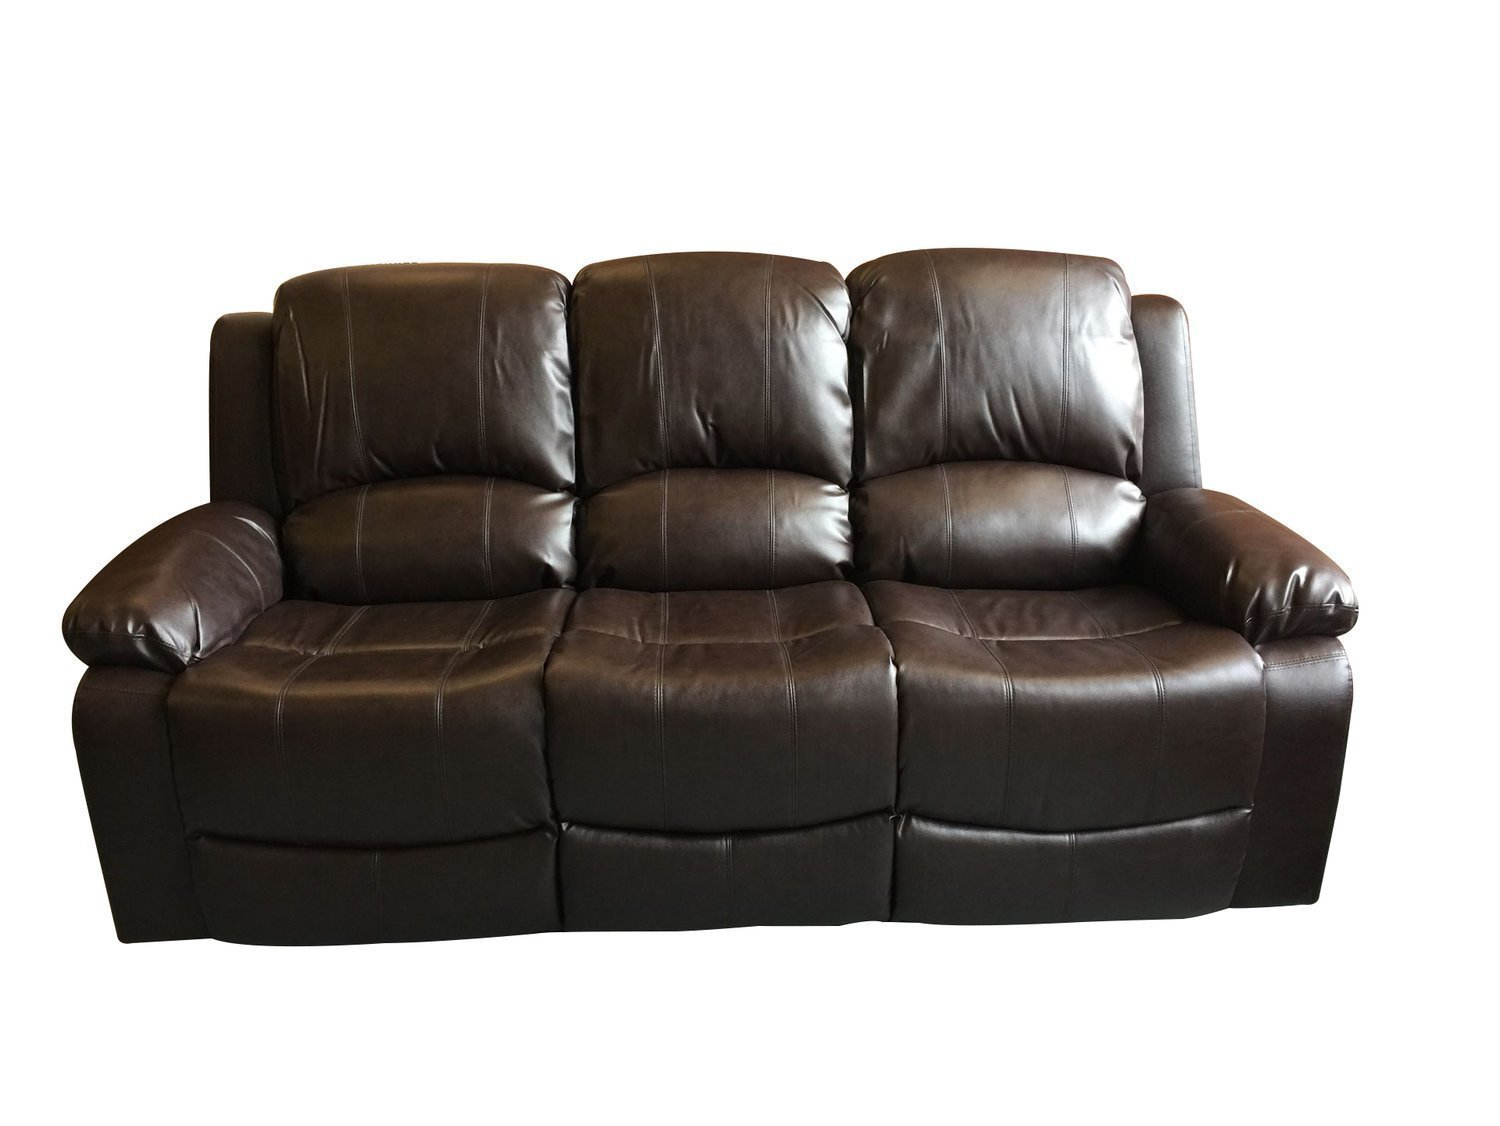 The Valencia 3 Seater Recliner Sofa